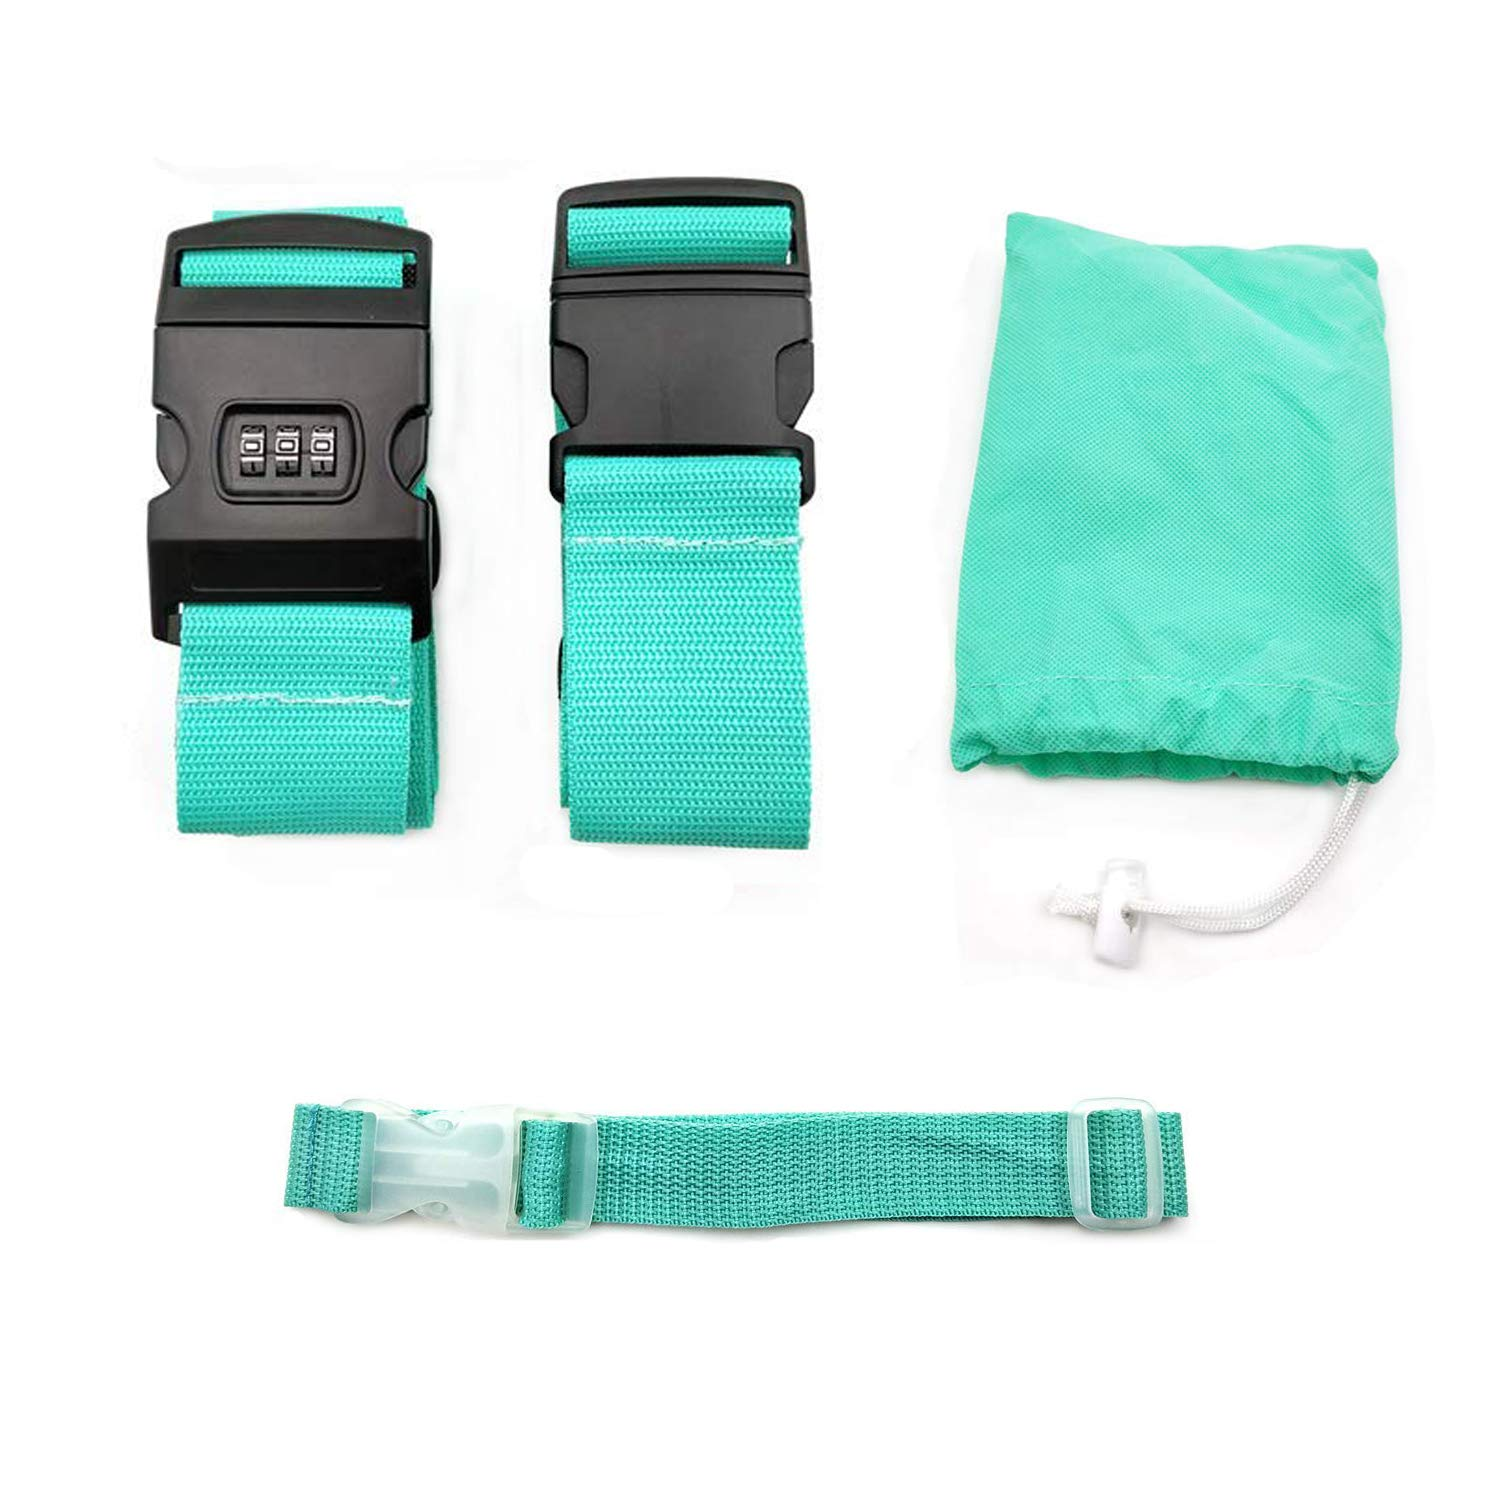 CHMETE Travel Suitcase Belts/Luggage Straps ssss2141